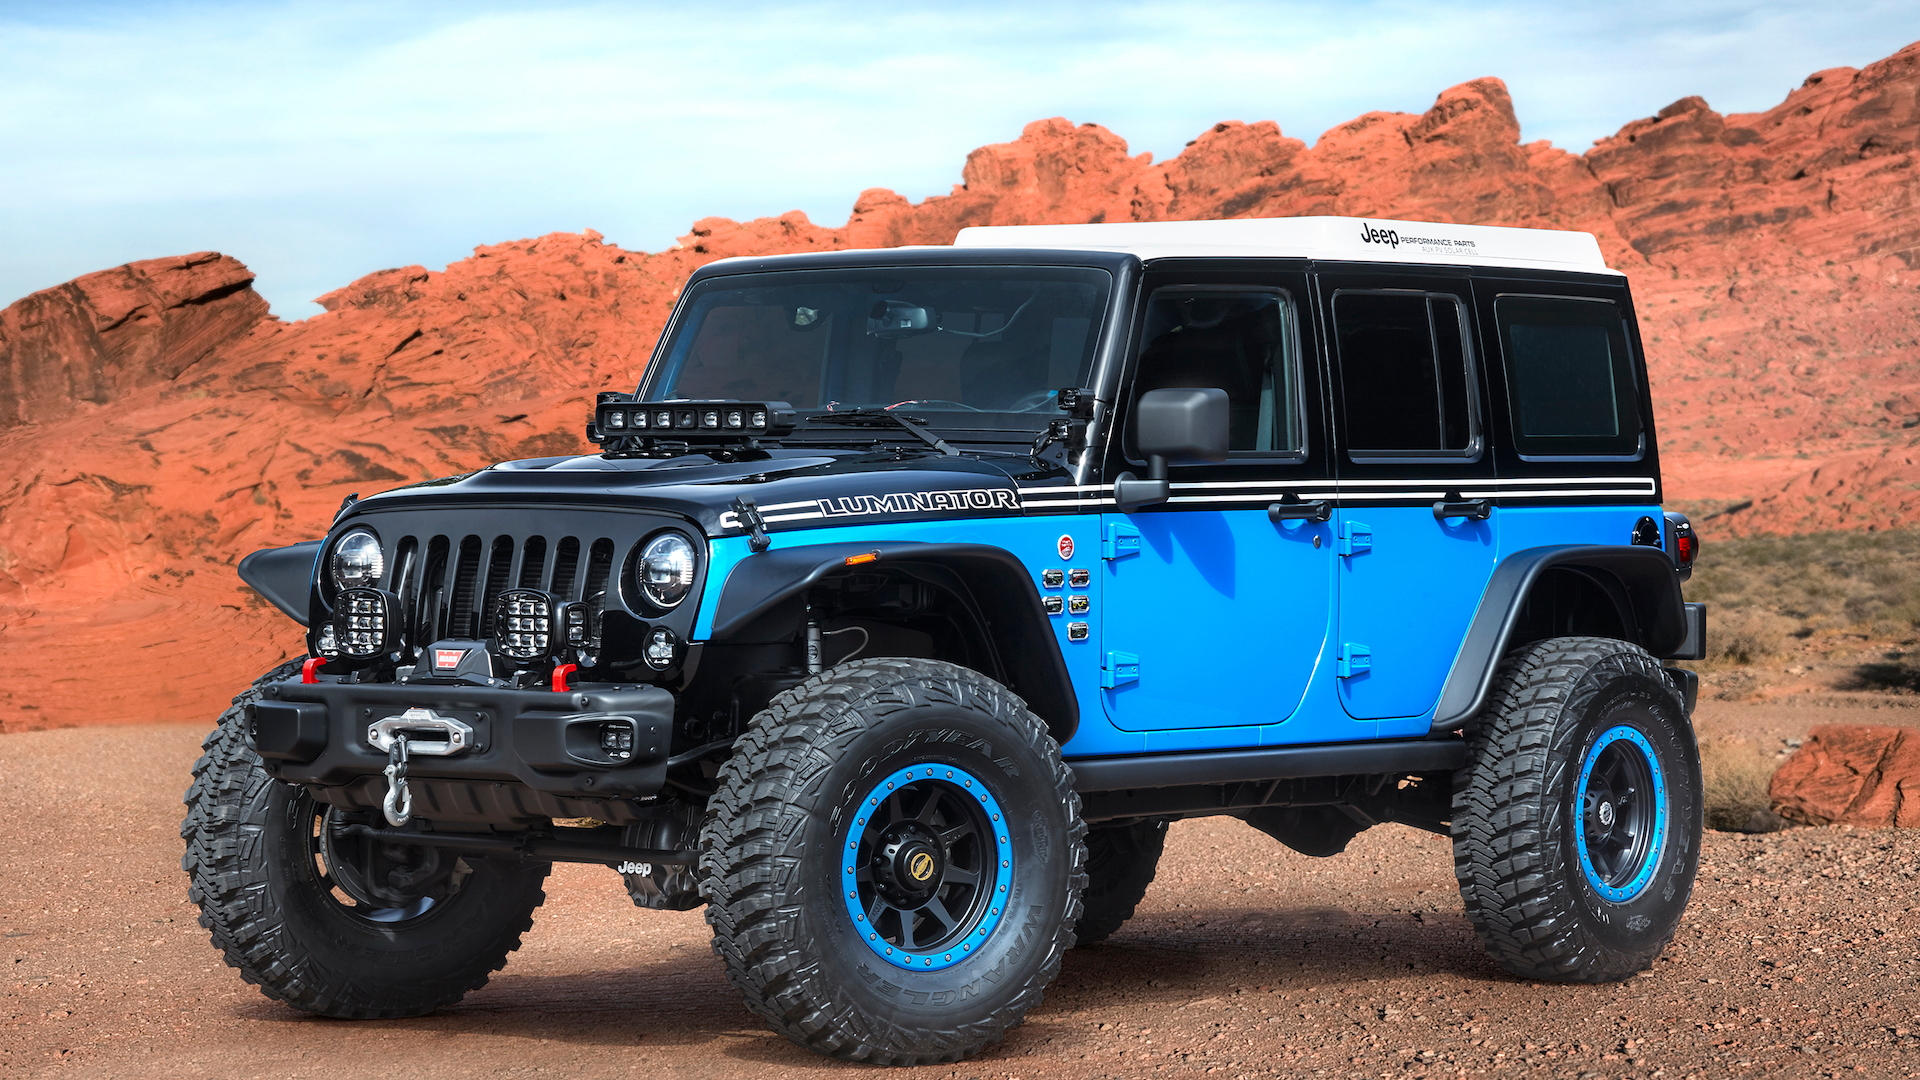 Jeep Luminator for Moab Easter Jeep Safari, 2017